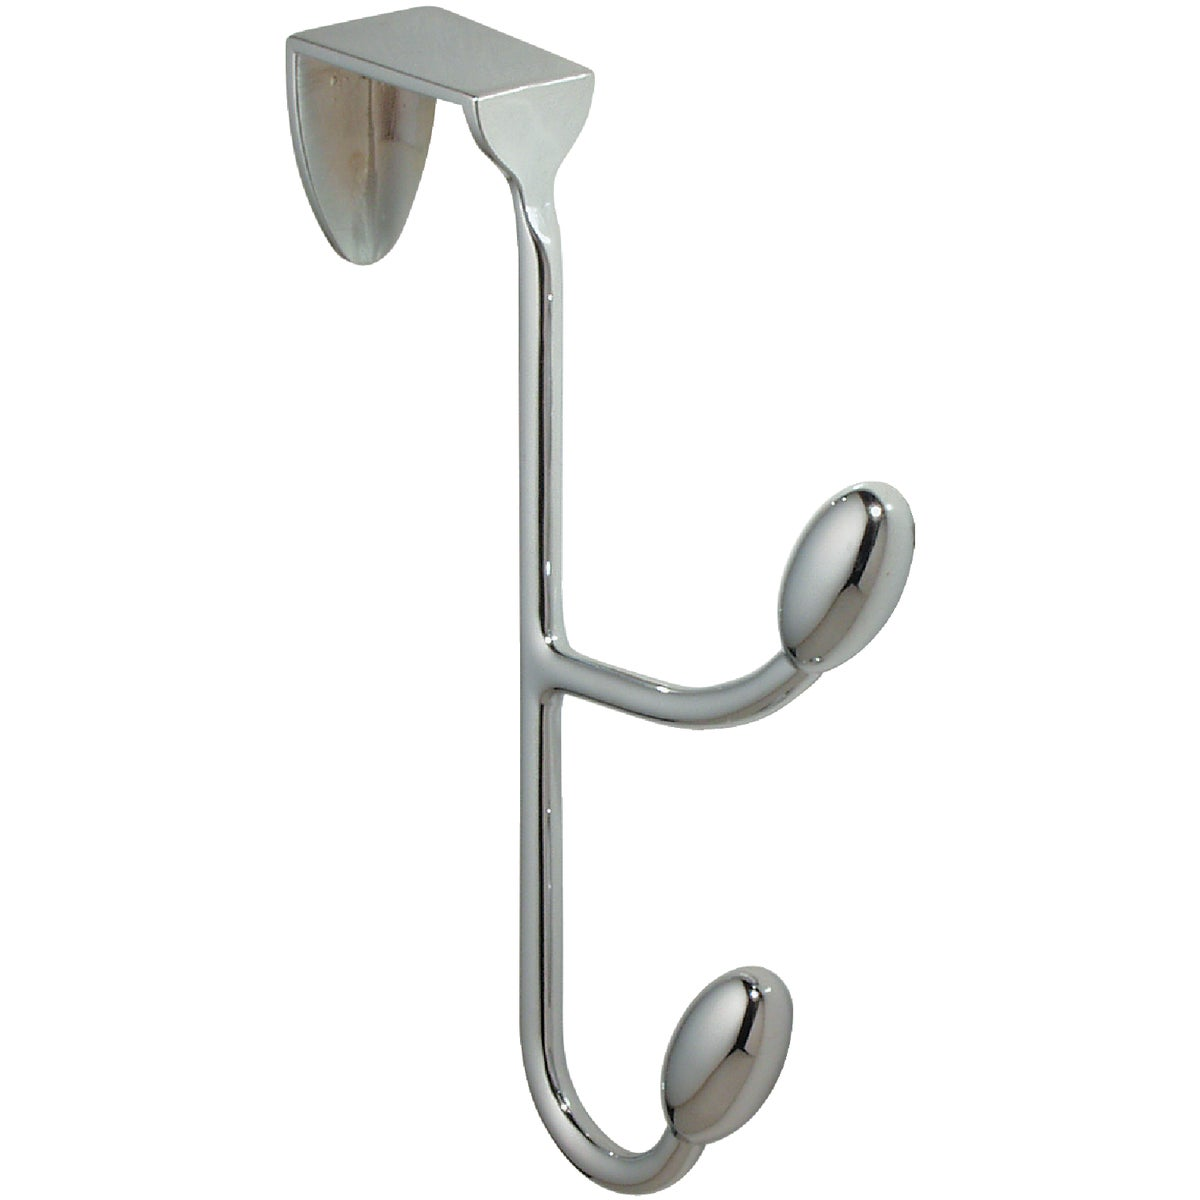 DOUBLE OVER DOOR HOOK - 76500 by Interdesign Inc